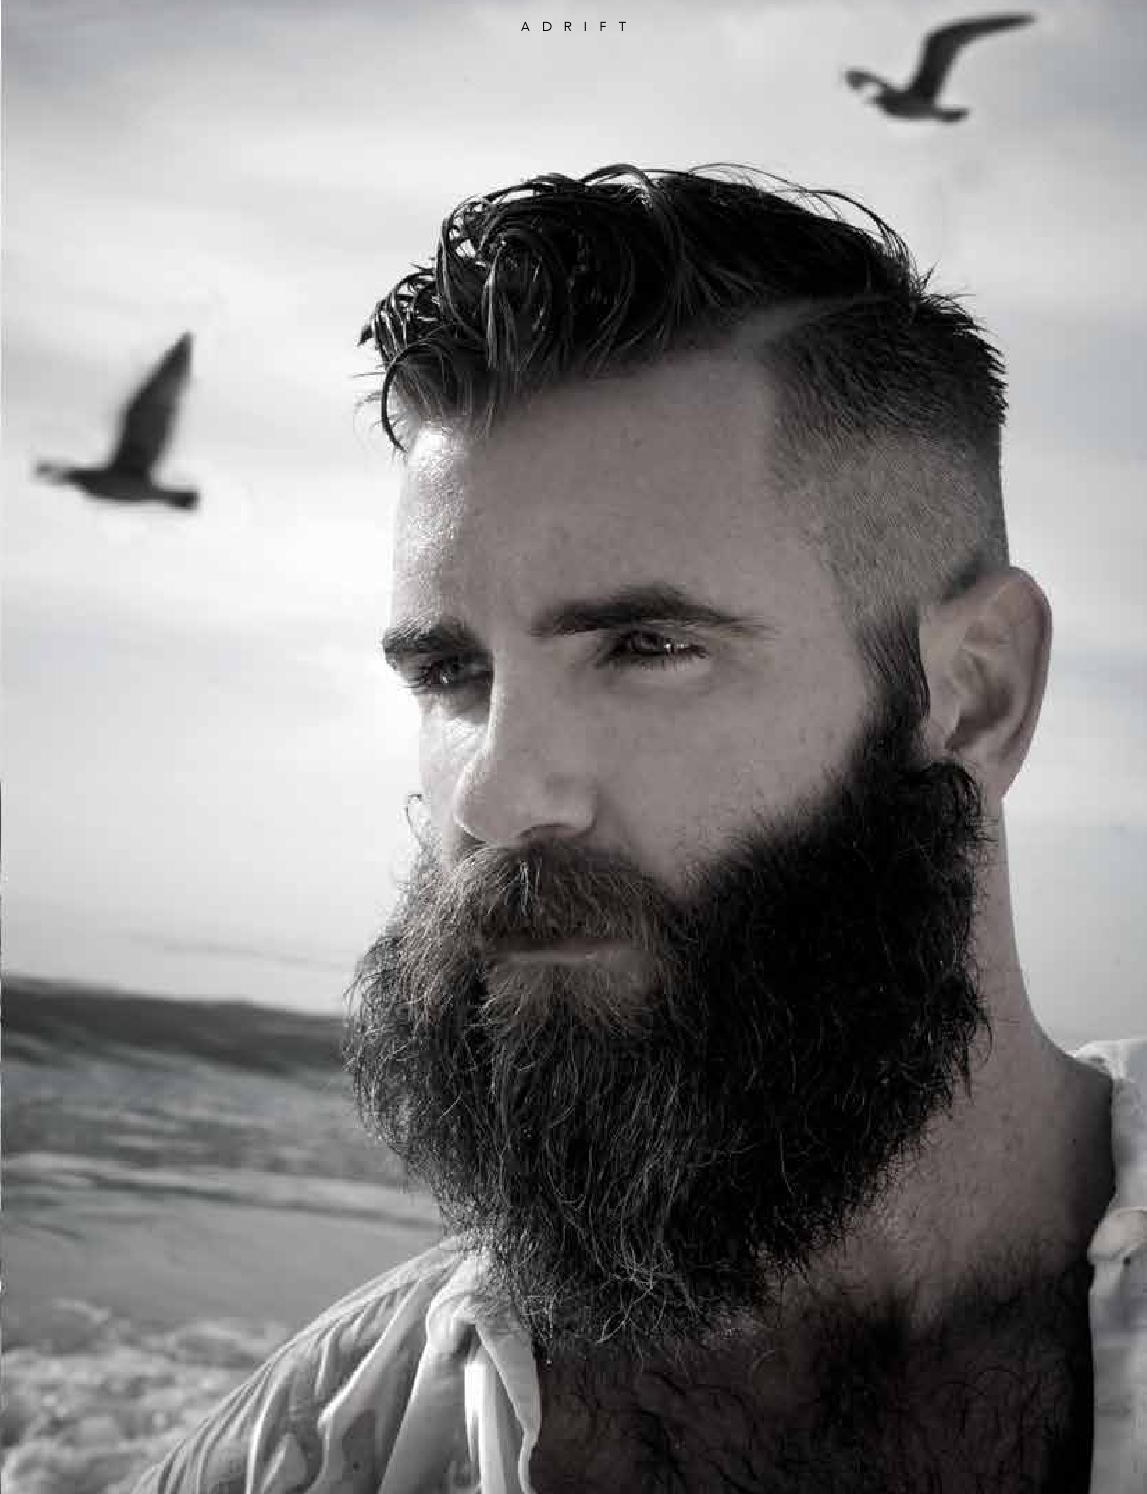 Clean men's haircut marapr  beauty u groom issue no xxxvi  awesome beards hipster